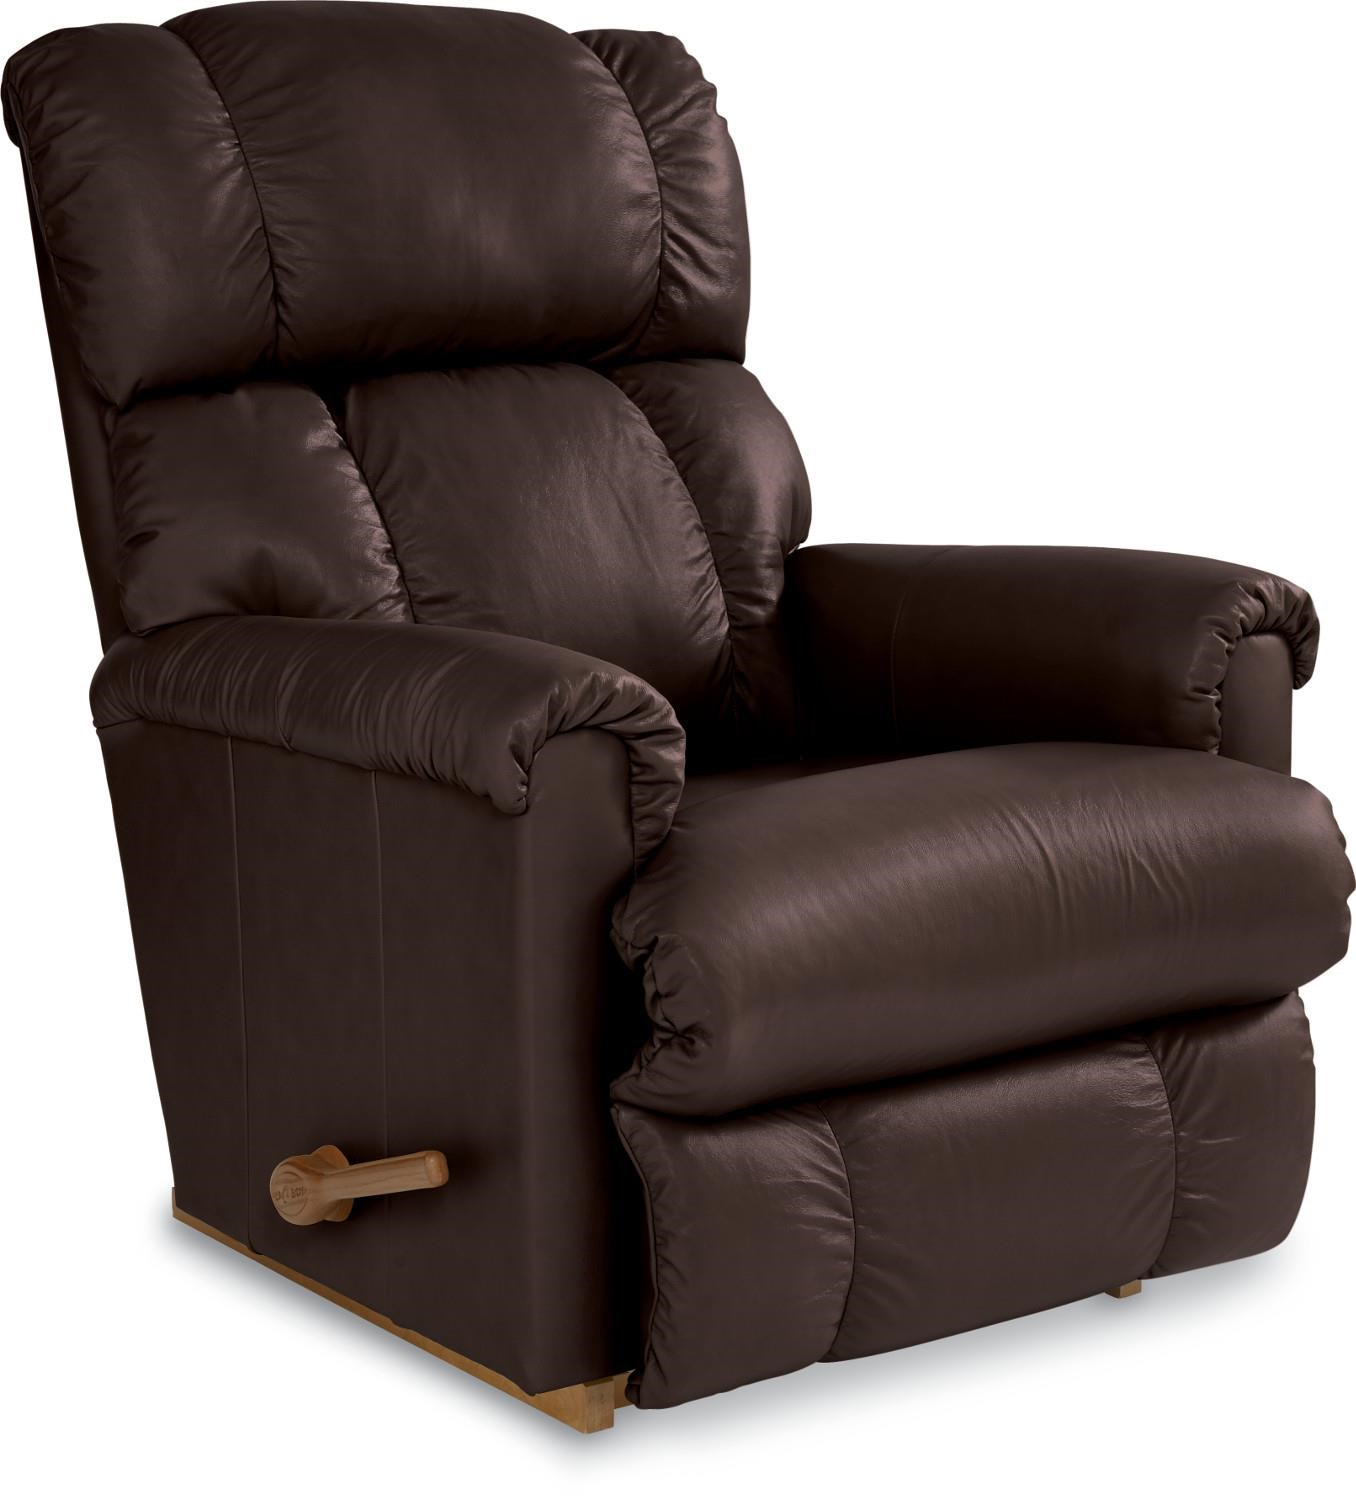 La-Z-Boy Pinnacle Expresso Leather Rocker Recliner - Great American Home Store - Three Way Recliners  sc 1 st  Great American Home Store & La-Z-Boy Pinnacle Expresso Leather Rocker Recliner - Great ... islam-shia.org